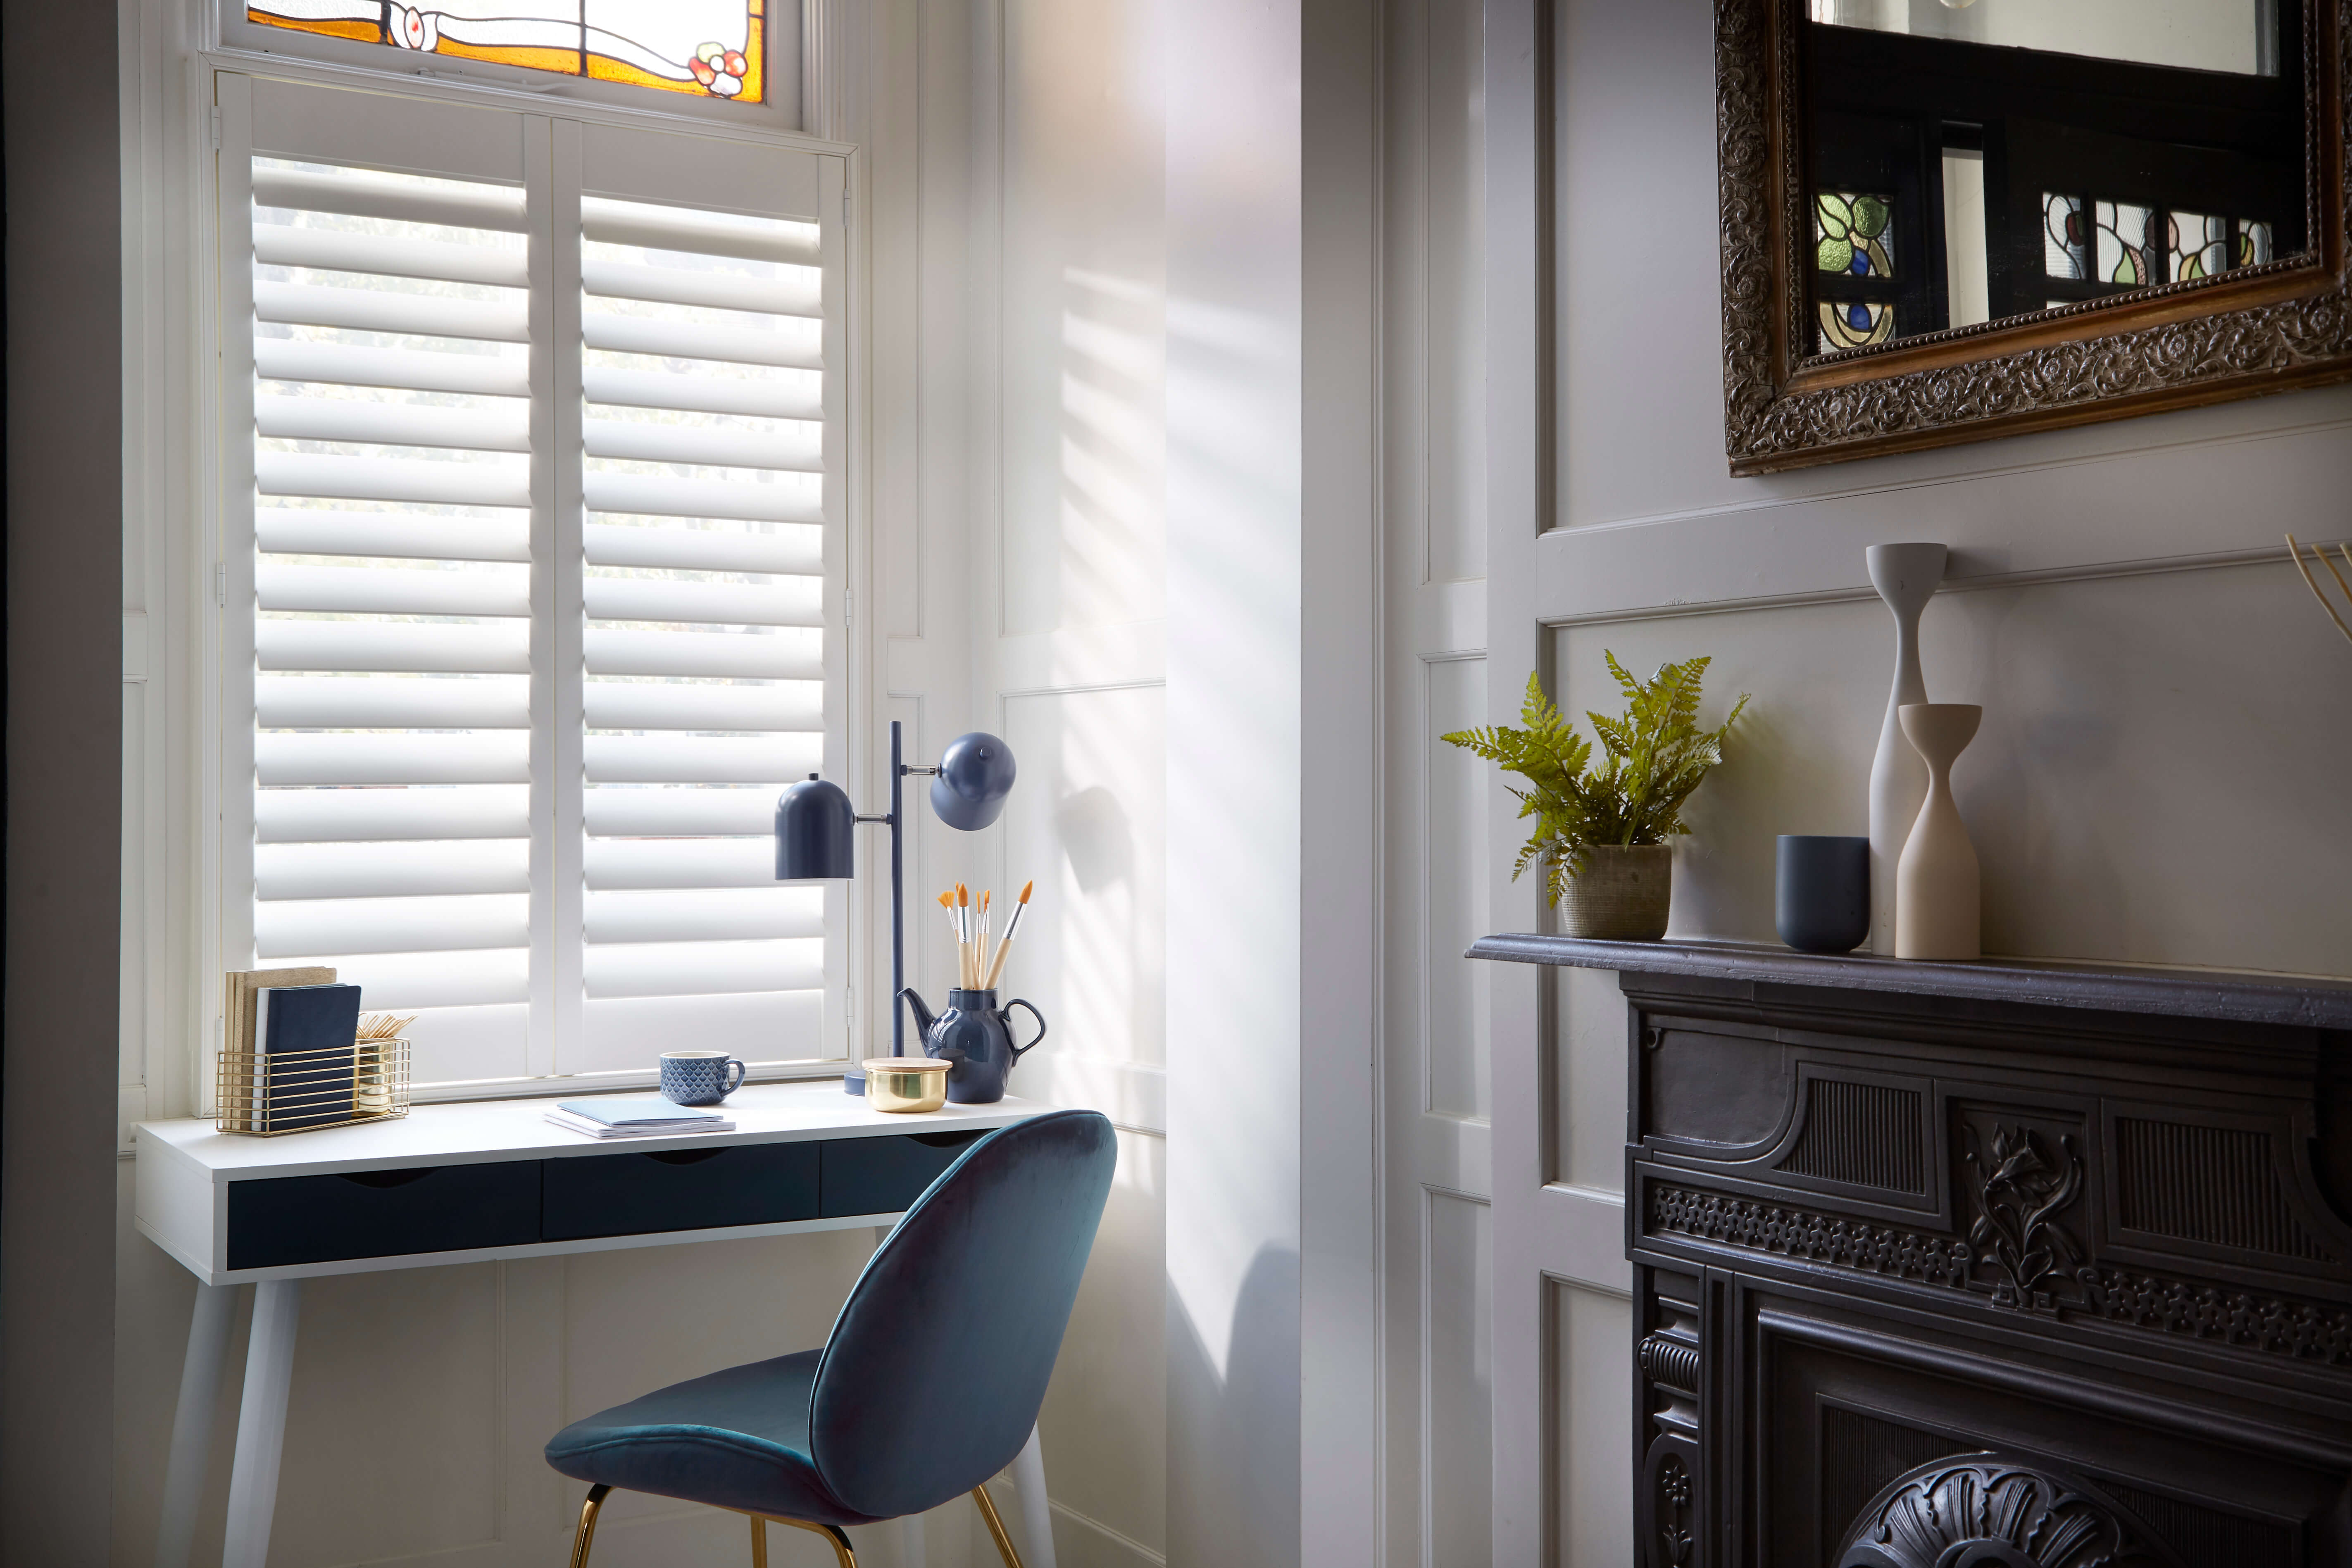 cafe style shutters exposing traditional leaded windows